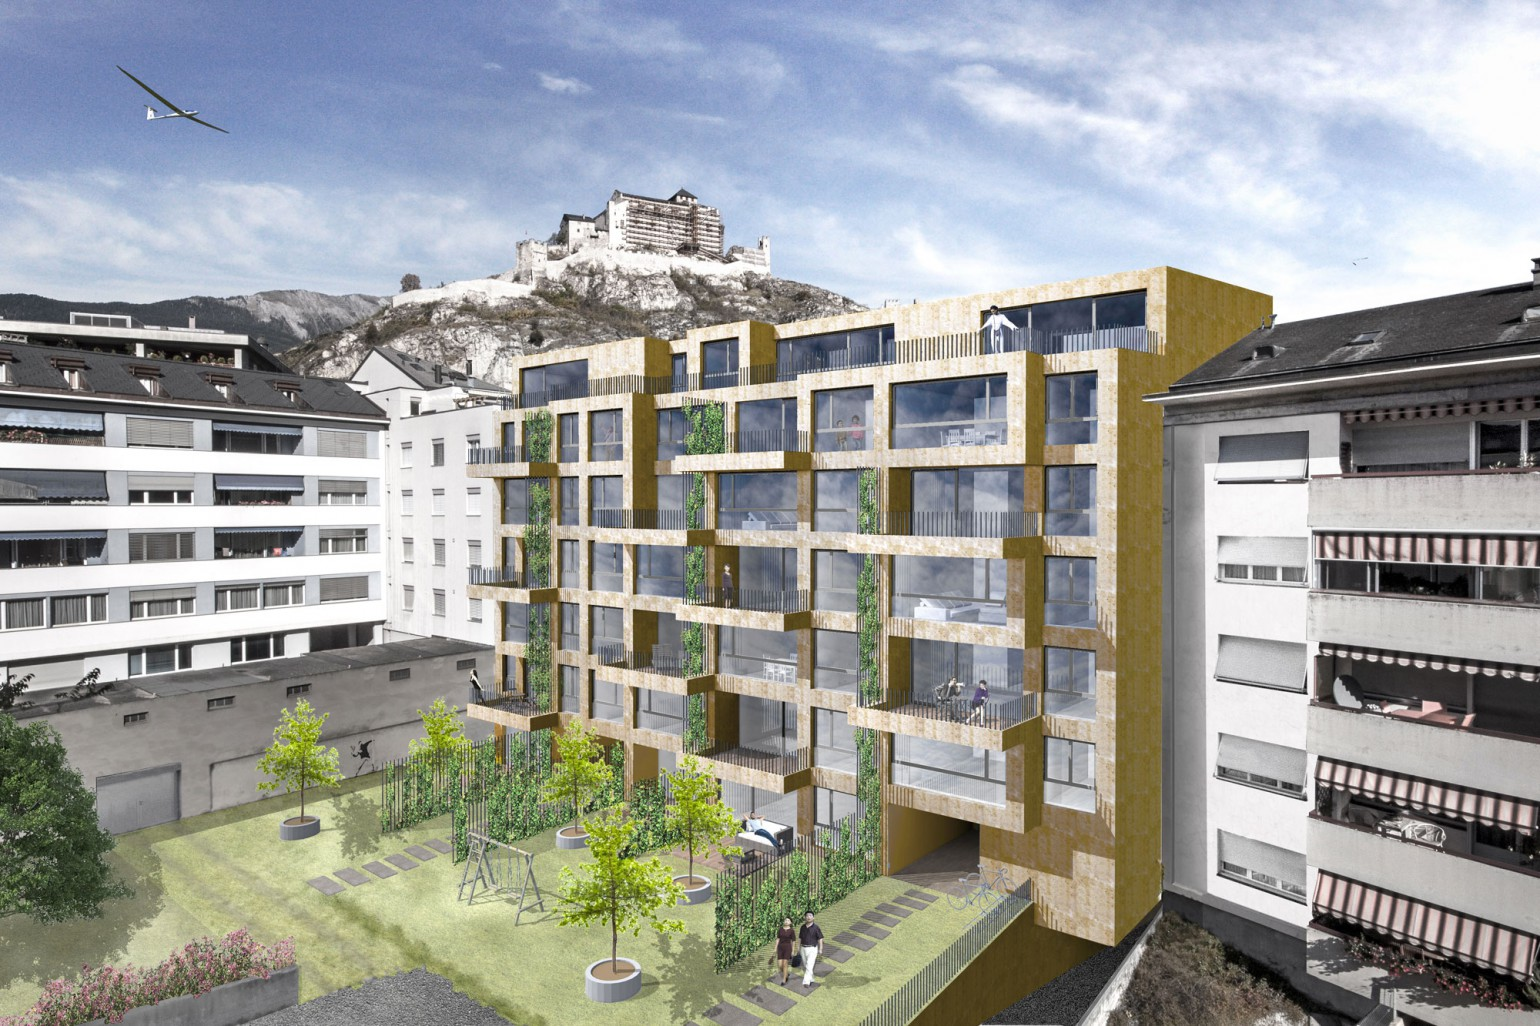 immeuble-dixence-sion-meyer-architecture-sion-01